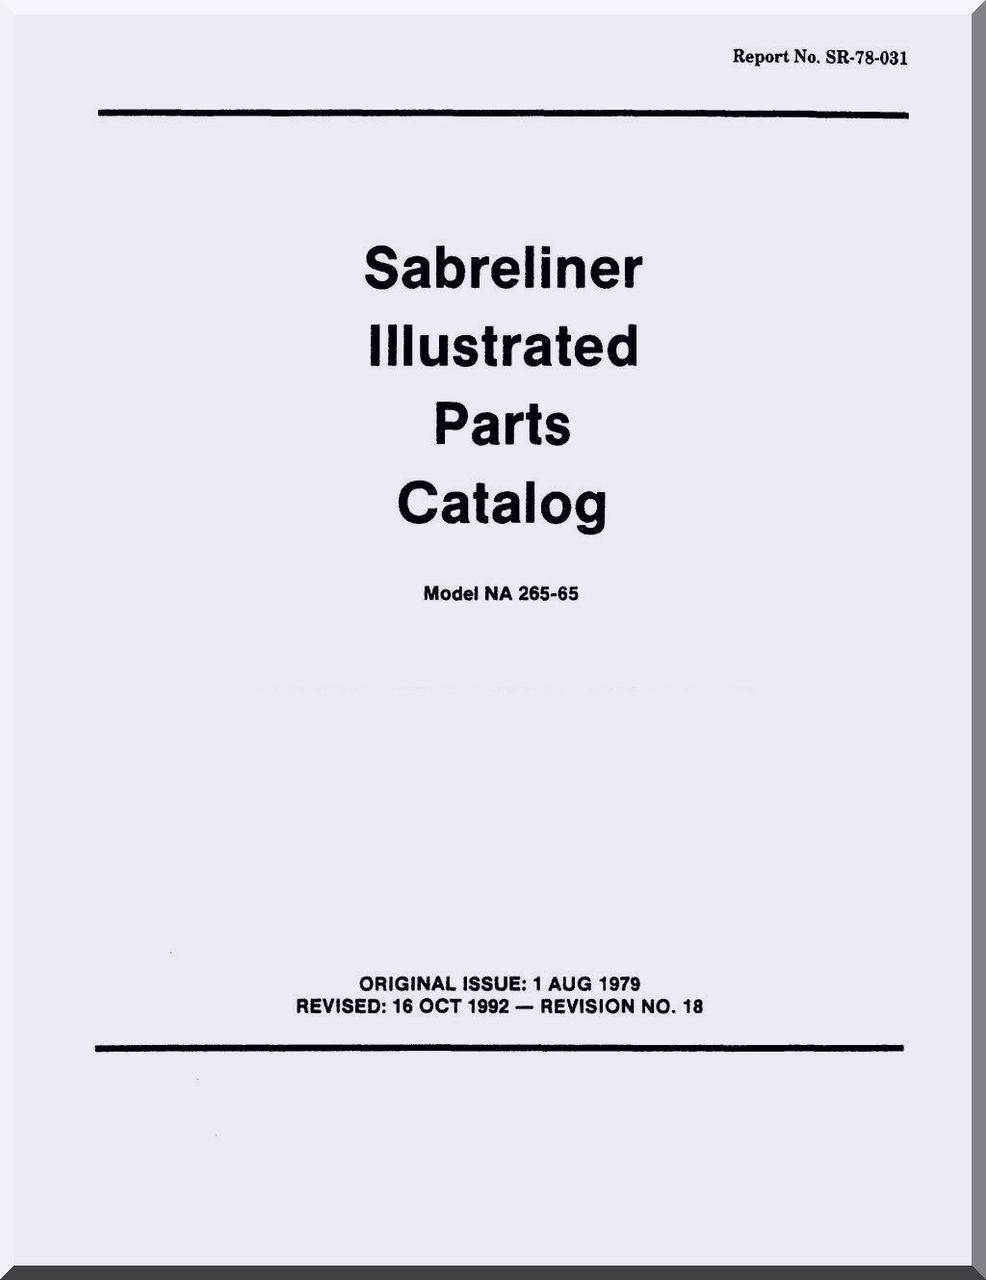 Sabreliner NA 265-65 Aircraft Illustrated Parts Catalog